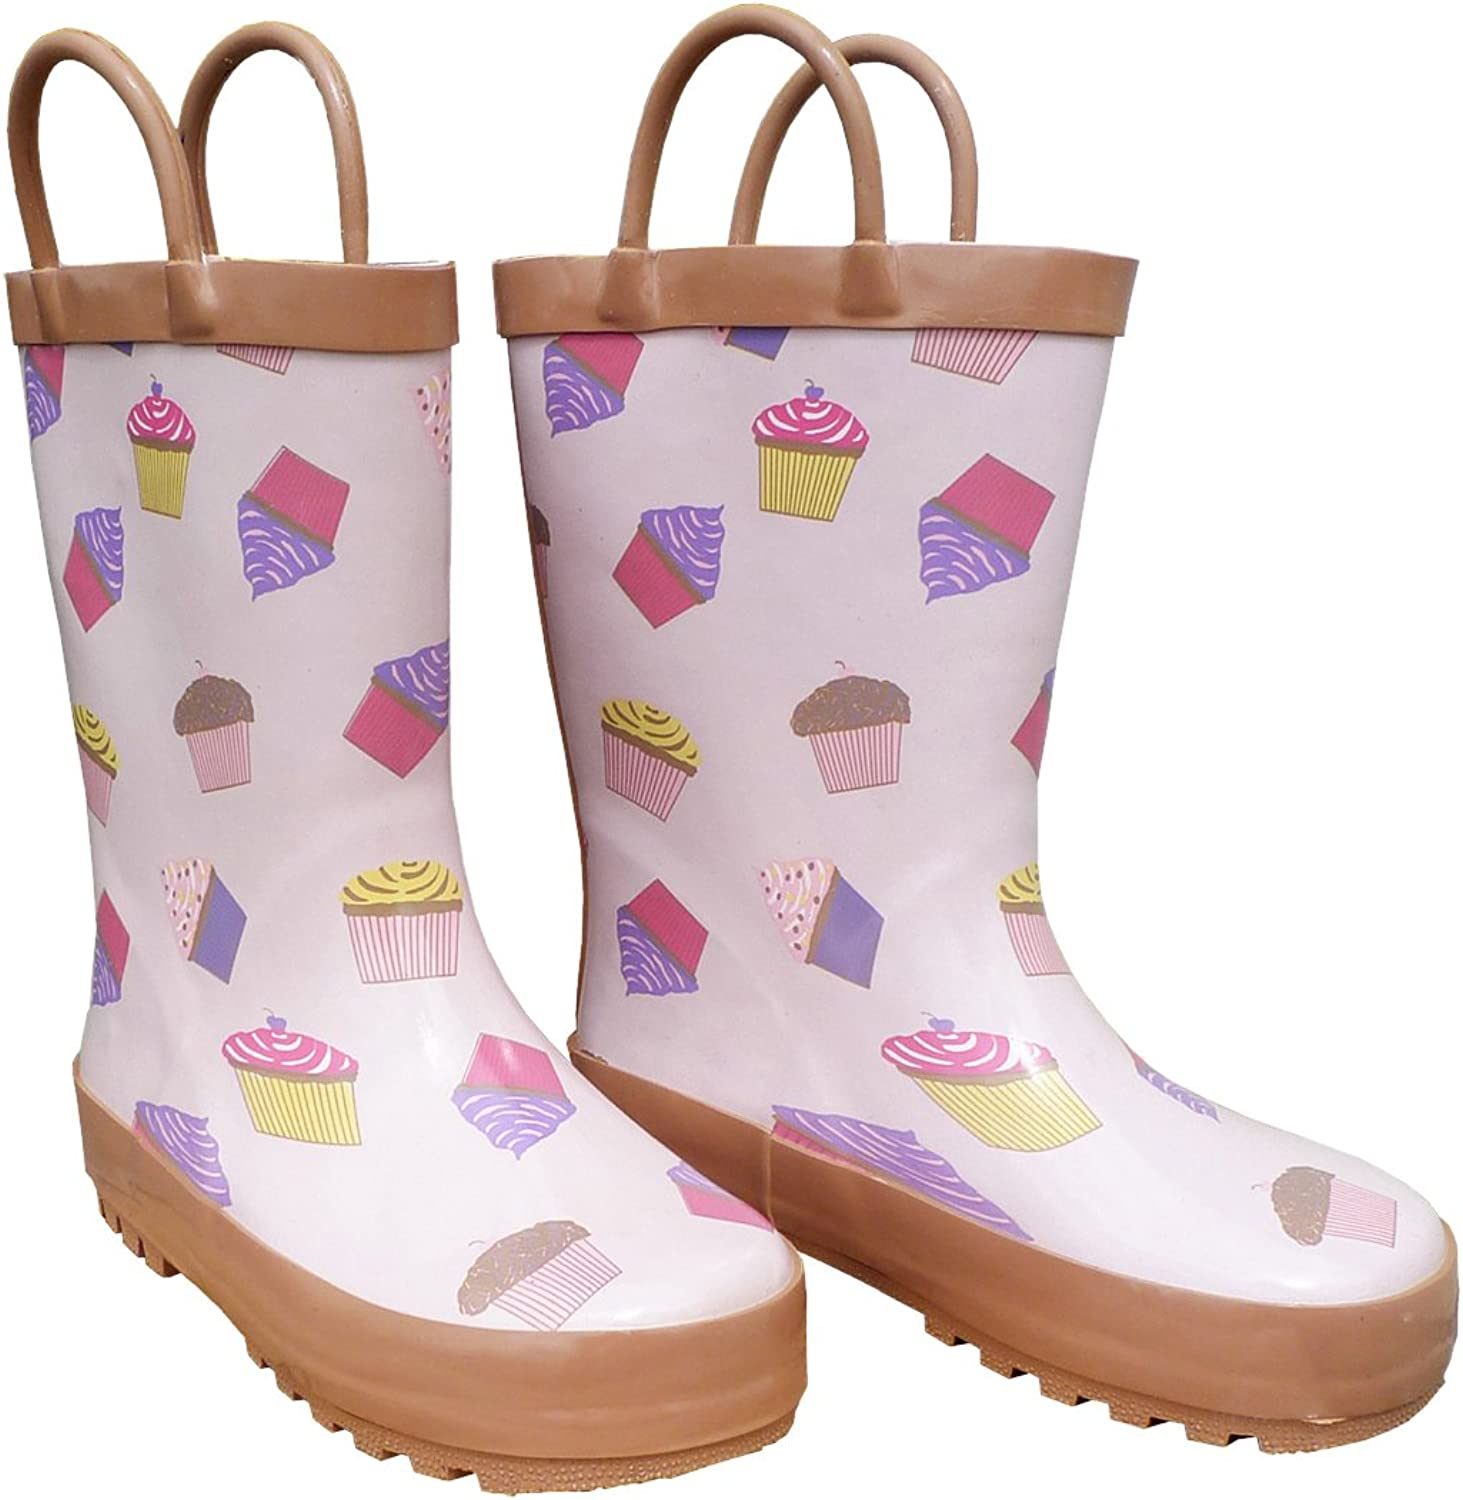 Foxfire for Kids Light Pink with 10 Boots size Cupcakes Rubber New Orleans San Diego Mall Mall